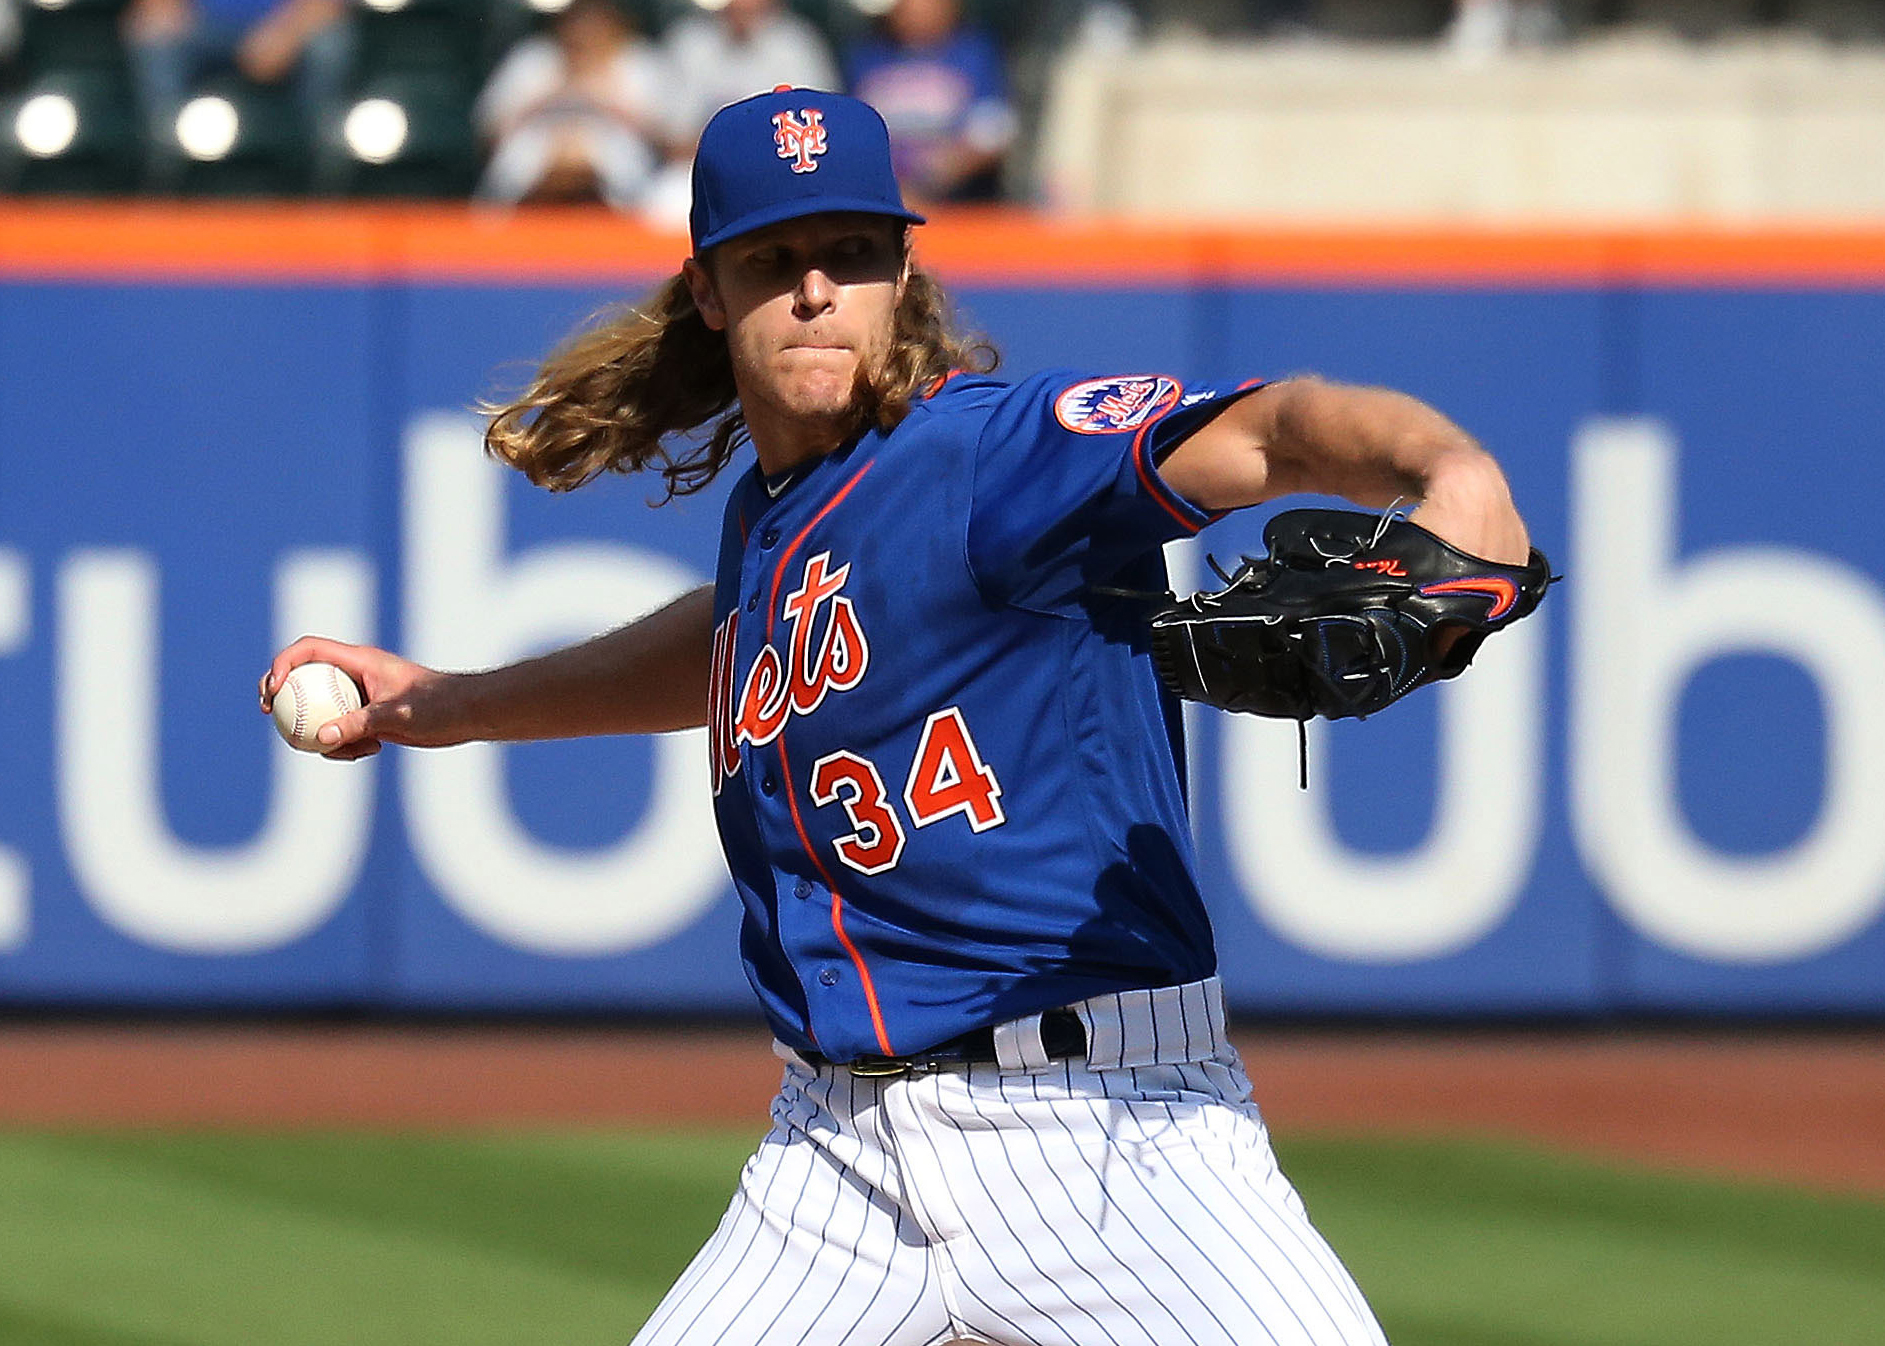 Report: New York Mets Receiving Significant Trade Interest in Noah Syndergaard